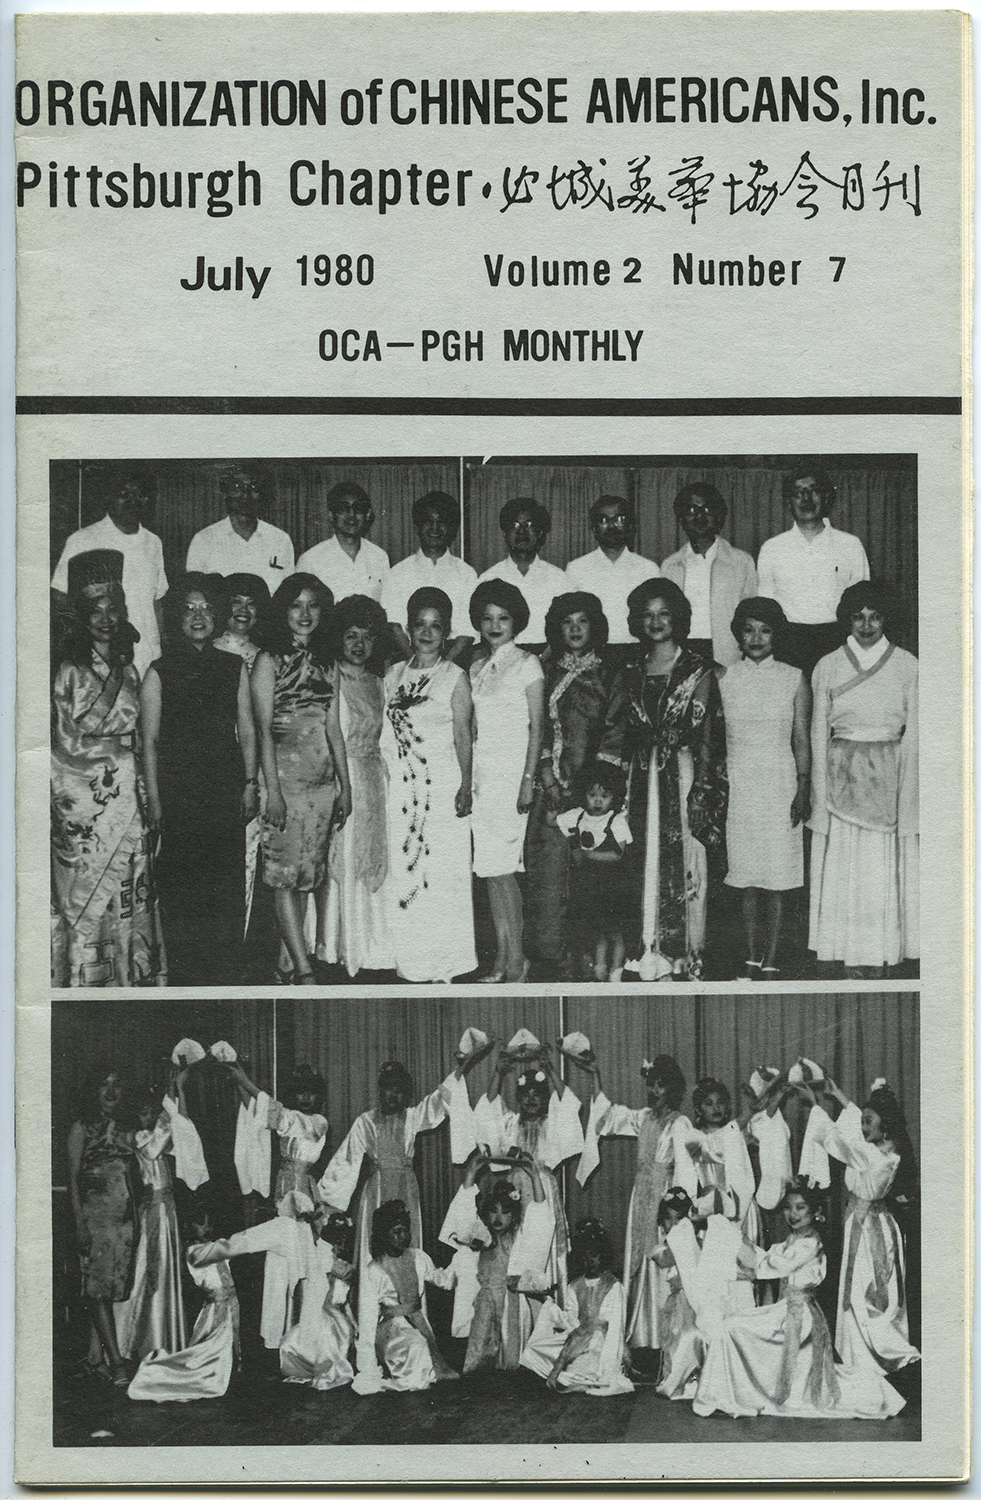 Front page of the July 1980 issue of the Organization of Chinese Americans - Pittsburgh Chapter newsletter. Heinz History Center.